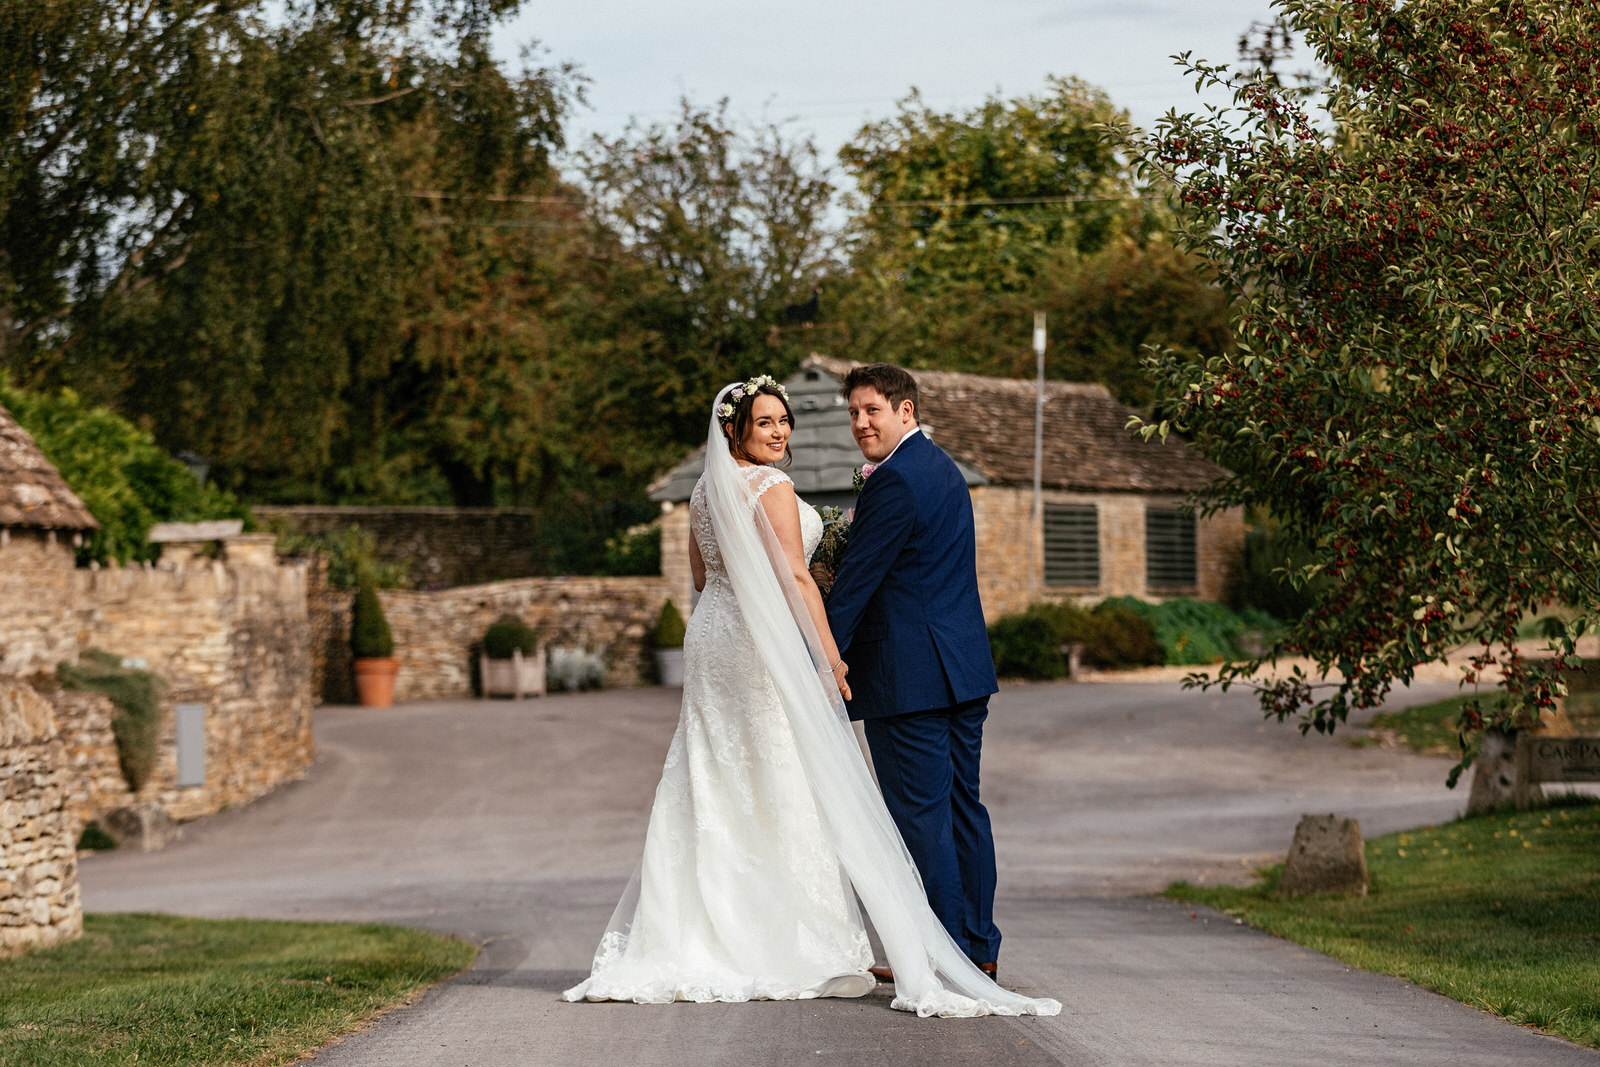 Winkworth-Farm-Wedding-Photographer-097.jpg